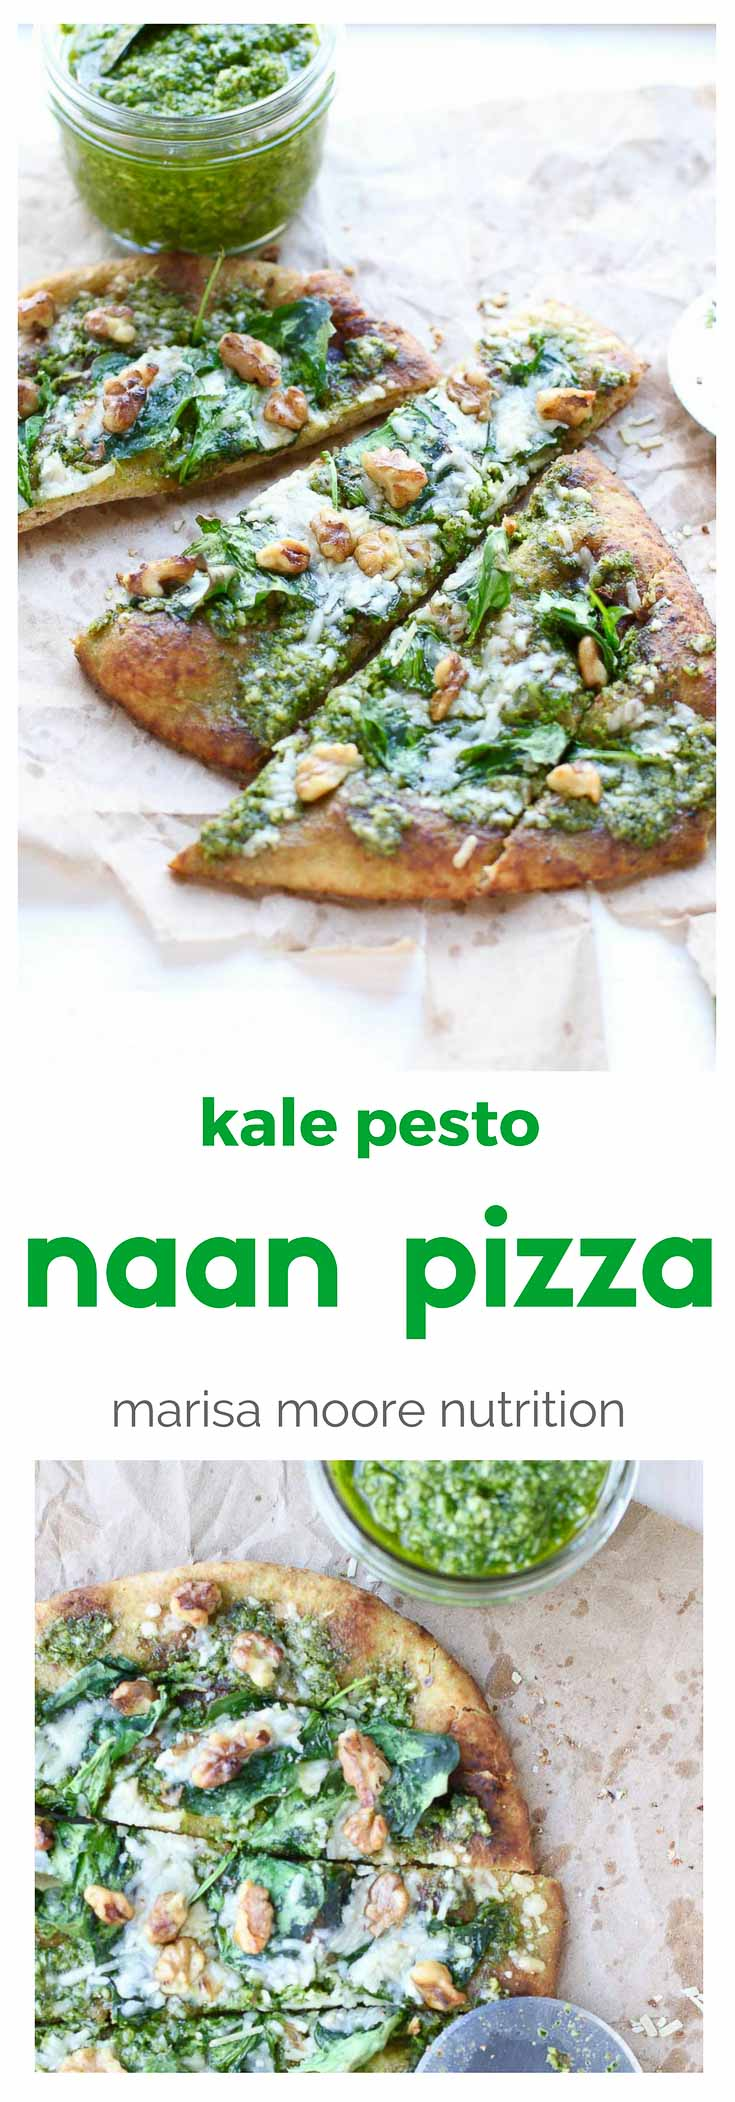 Easy Naan Pizza! This Kale Pesto Naan Pizza is made with whole grain naan, baby kale, walnuts and lots of garlic! @marisamoore